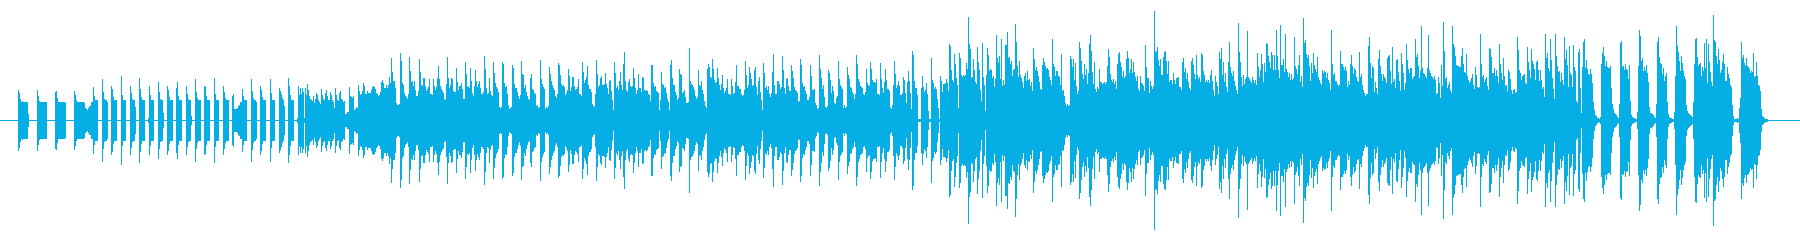 Retro game style SKA + electronica's reproduced waveform